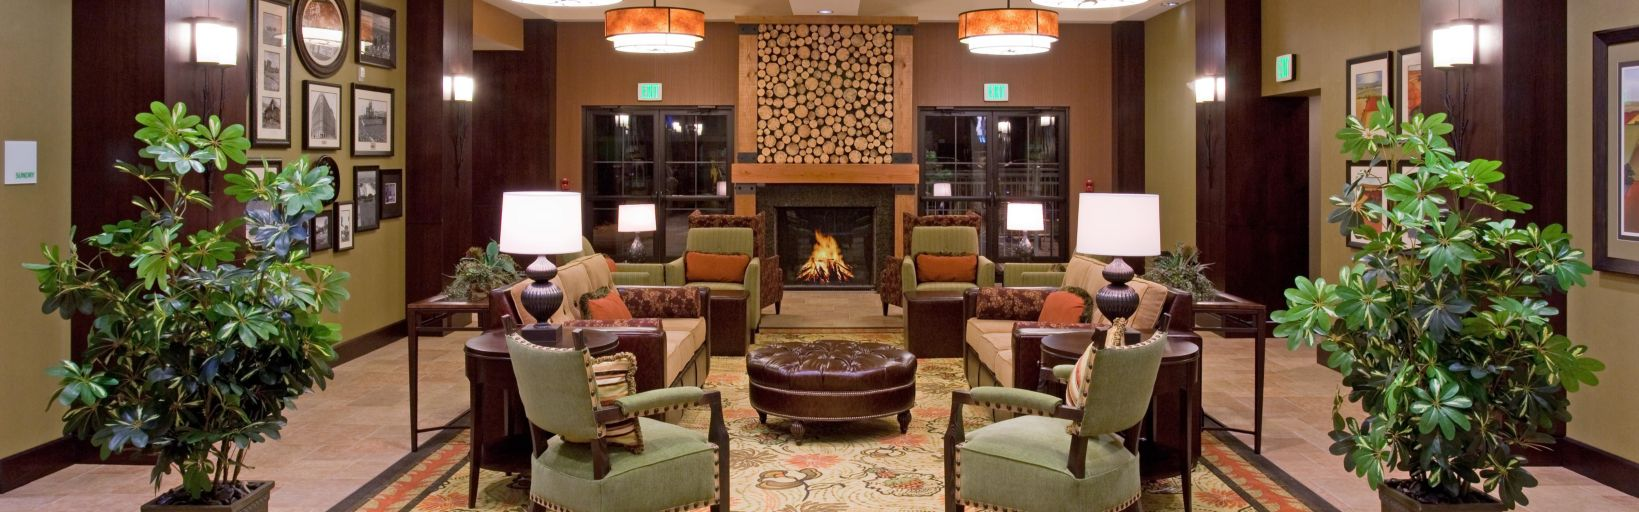 Hotel Front Desk Lobby Lounge